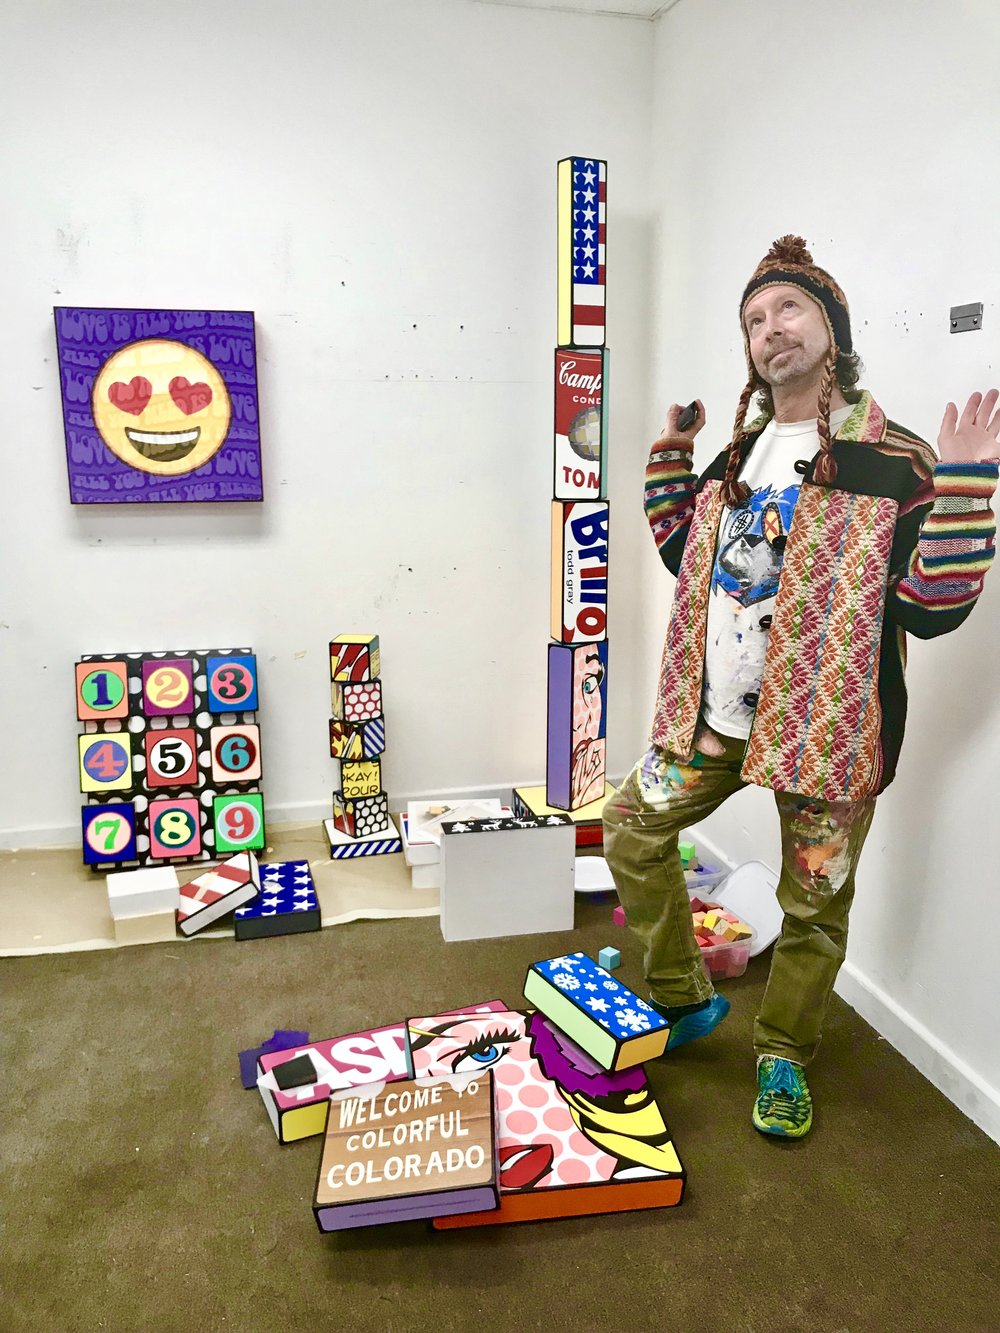 Bio - Todd was born in 1962 - around the same time pop art began to flourish under names like Warhol and Lichtenstein. His work samples what others have sampled in the past, but with his very own unique twist. Whereas most artists take to canvas, Todd uses three-dimensional blocks that he constructs of wood.